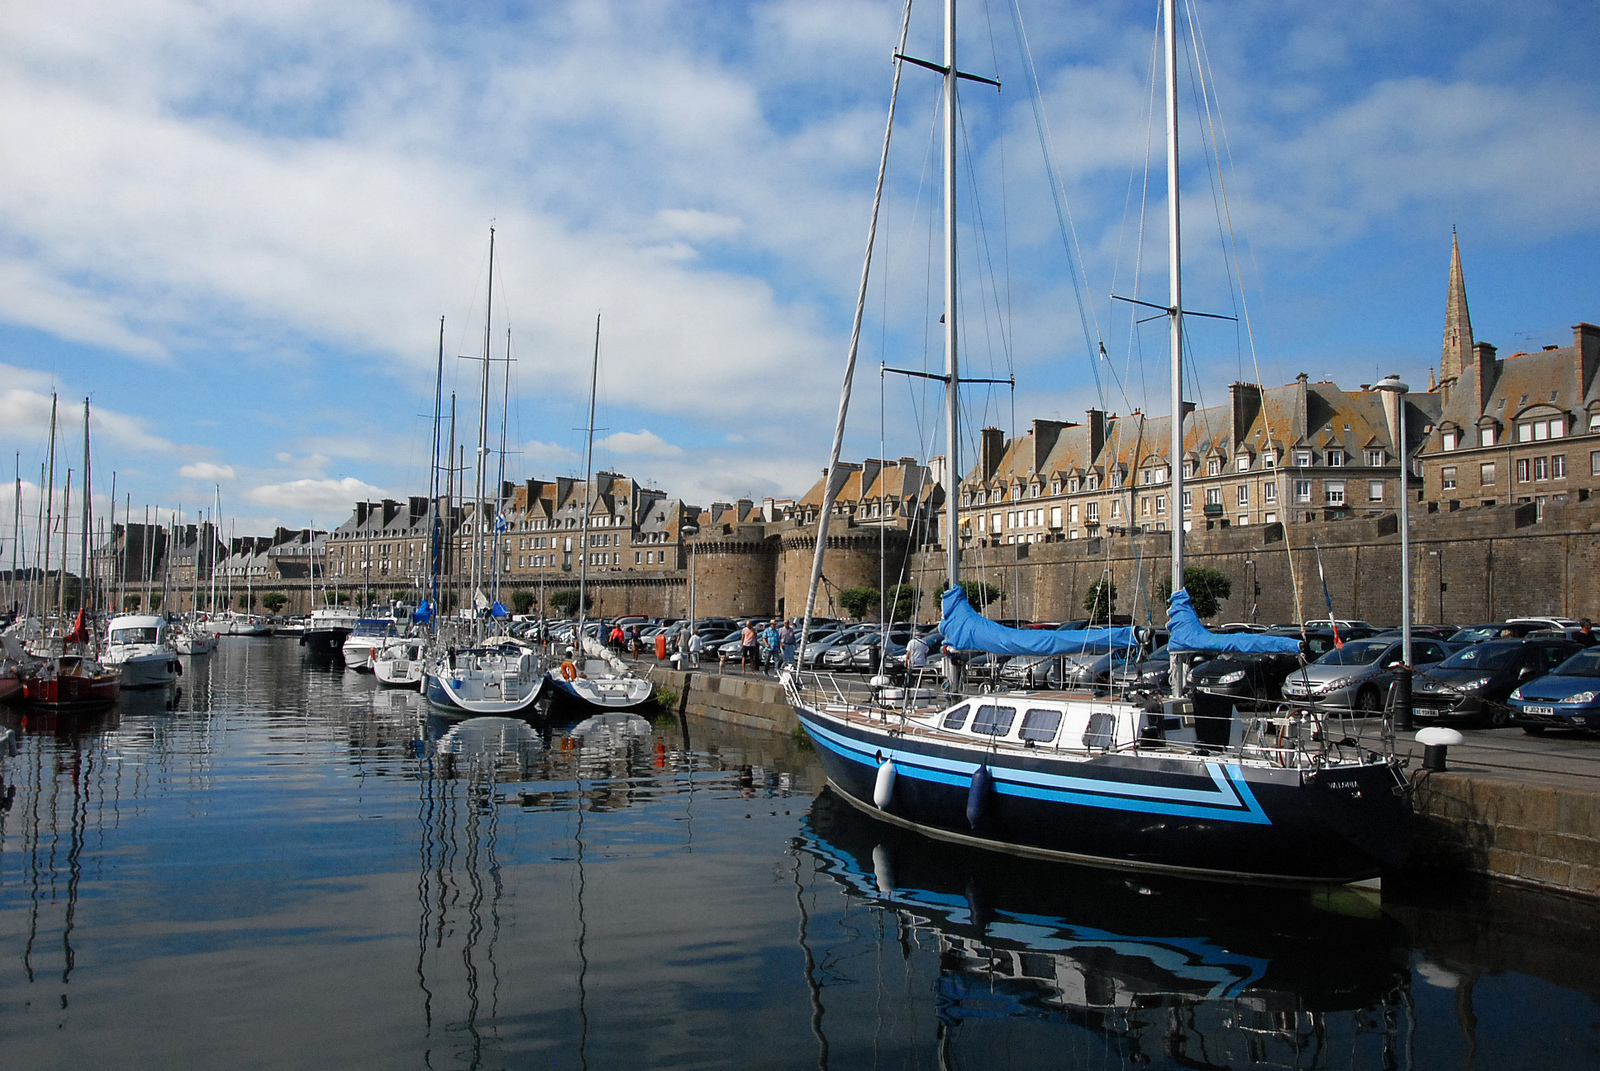 saint malo chat sites Saint-malo also holds many cultural and sporting events such as la route du rhum yacht race and the tall ships race as well as the etonnants wwwfortnationalcom.